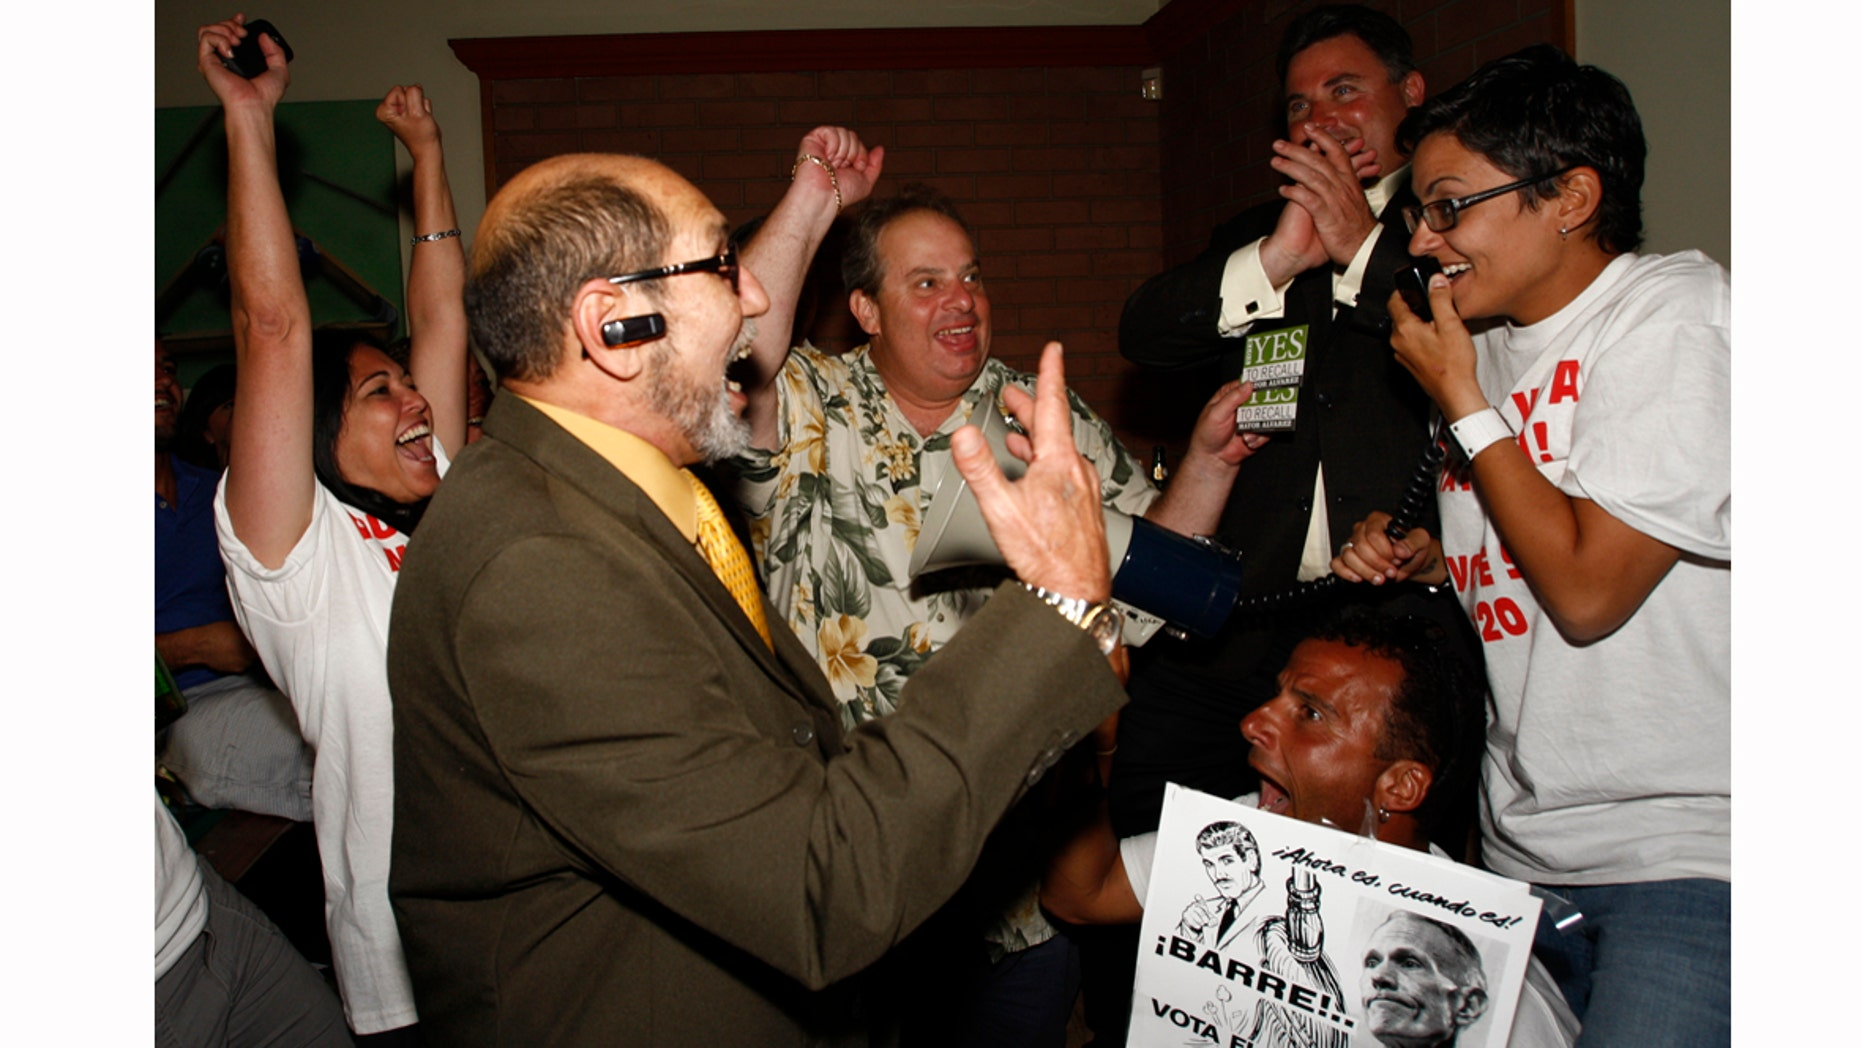 Members of Miami Voice and Miami Lakes Mayor Michael Pizzi, join Mimi Planas, left, Ernesto Lopez, Kevin Moejon, Ernesto Hernandez, holding the sign, Vanessa Brito, right, as they celebrate the results recalling County Commissioner Natacha Seijas and Miami Mayor Carlos Alvarez on Tuesday, March 15, 2011, inside the Billiard Club in Miami Lakes, Fla. (AP Photo/The Miami Herald, Carl Juste) MAGS OUT